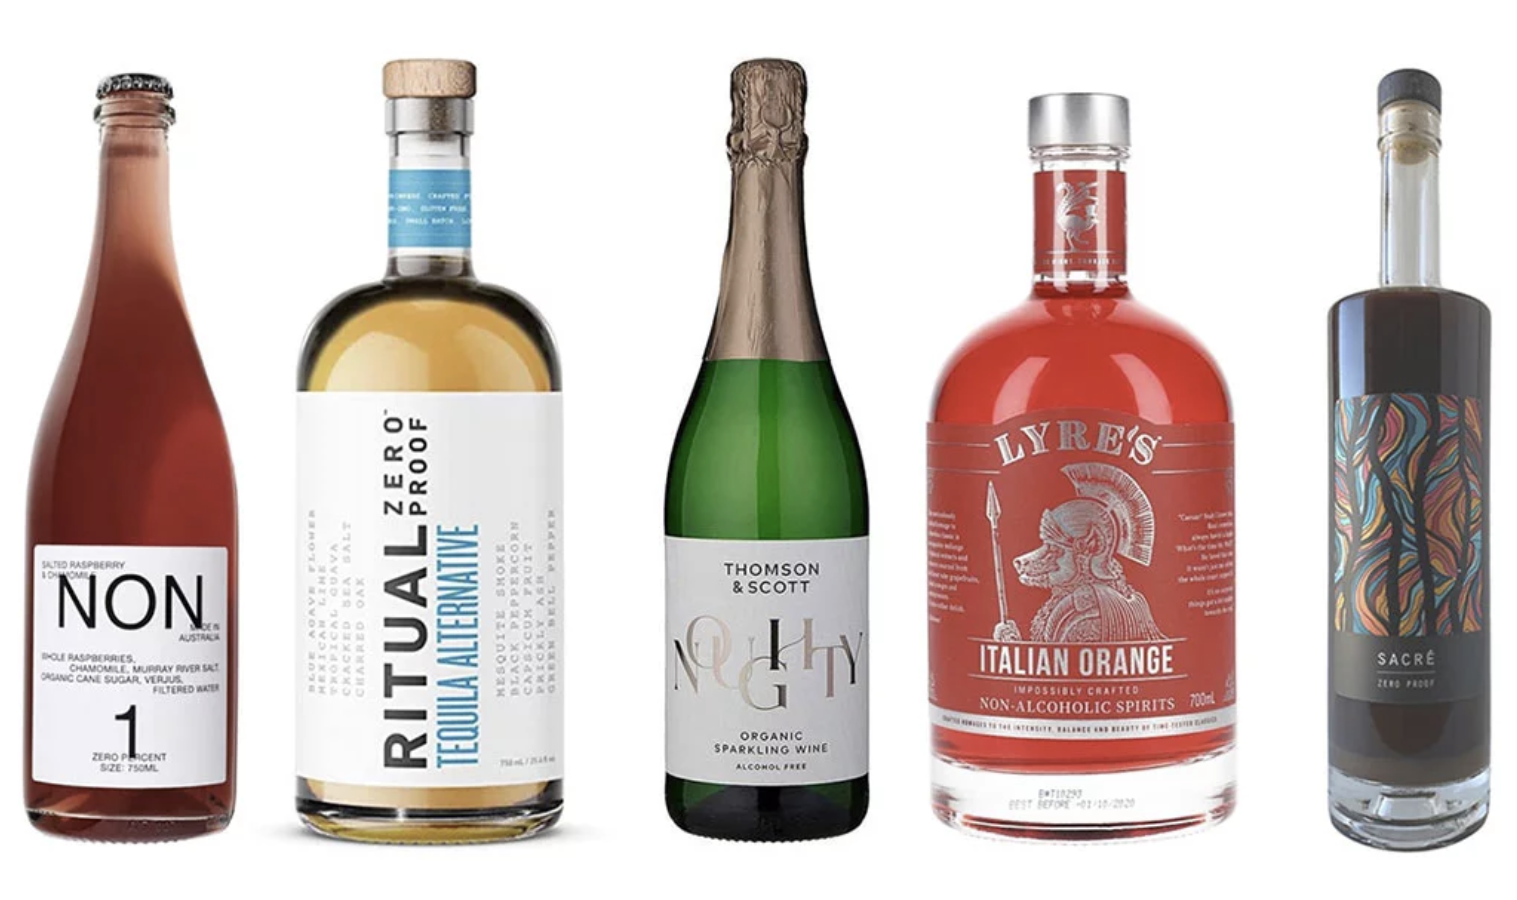 We woke up delighted to see that People Magazine, one of the biggest publications in the US, has not only run a feature on the best alcohol-free drinks to try this festive season, but that we are first on the list!